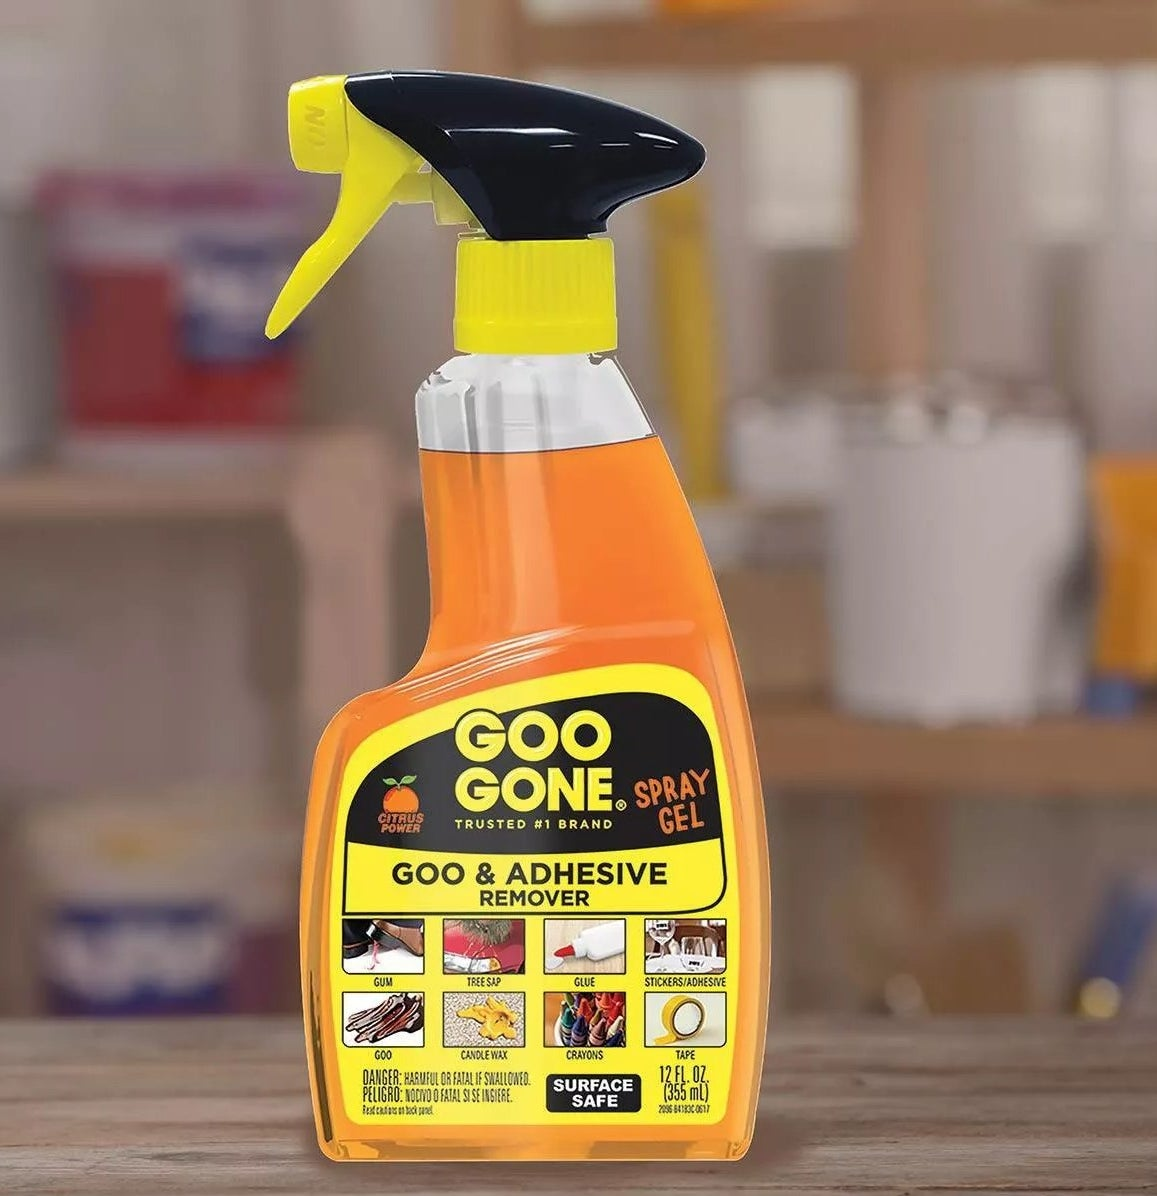 Goo Gone Spray Gel goo and adhesive remover for gum, goo, tree sap, candle wax, glue, crayons, stickers, and tape